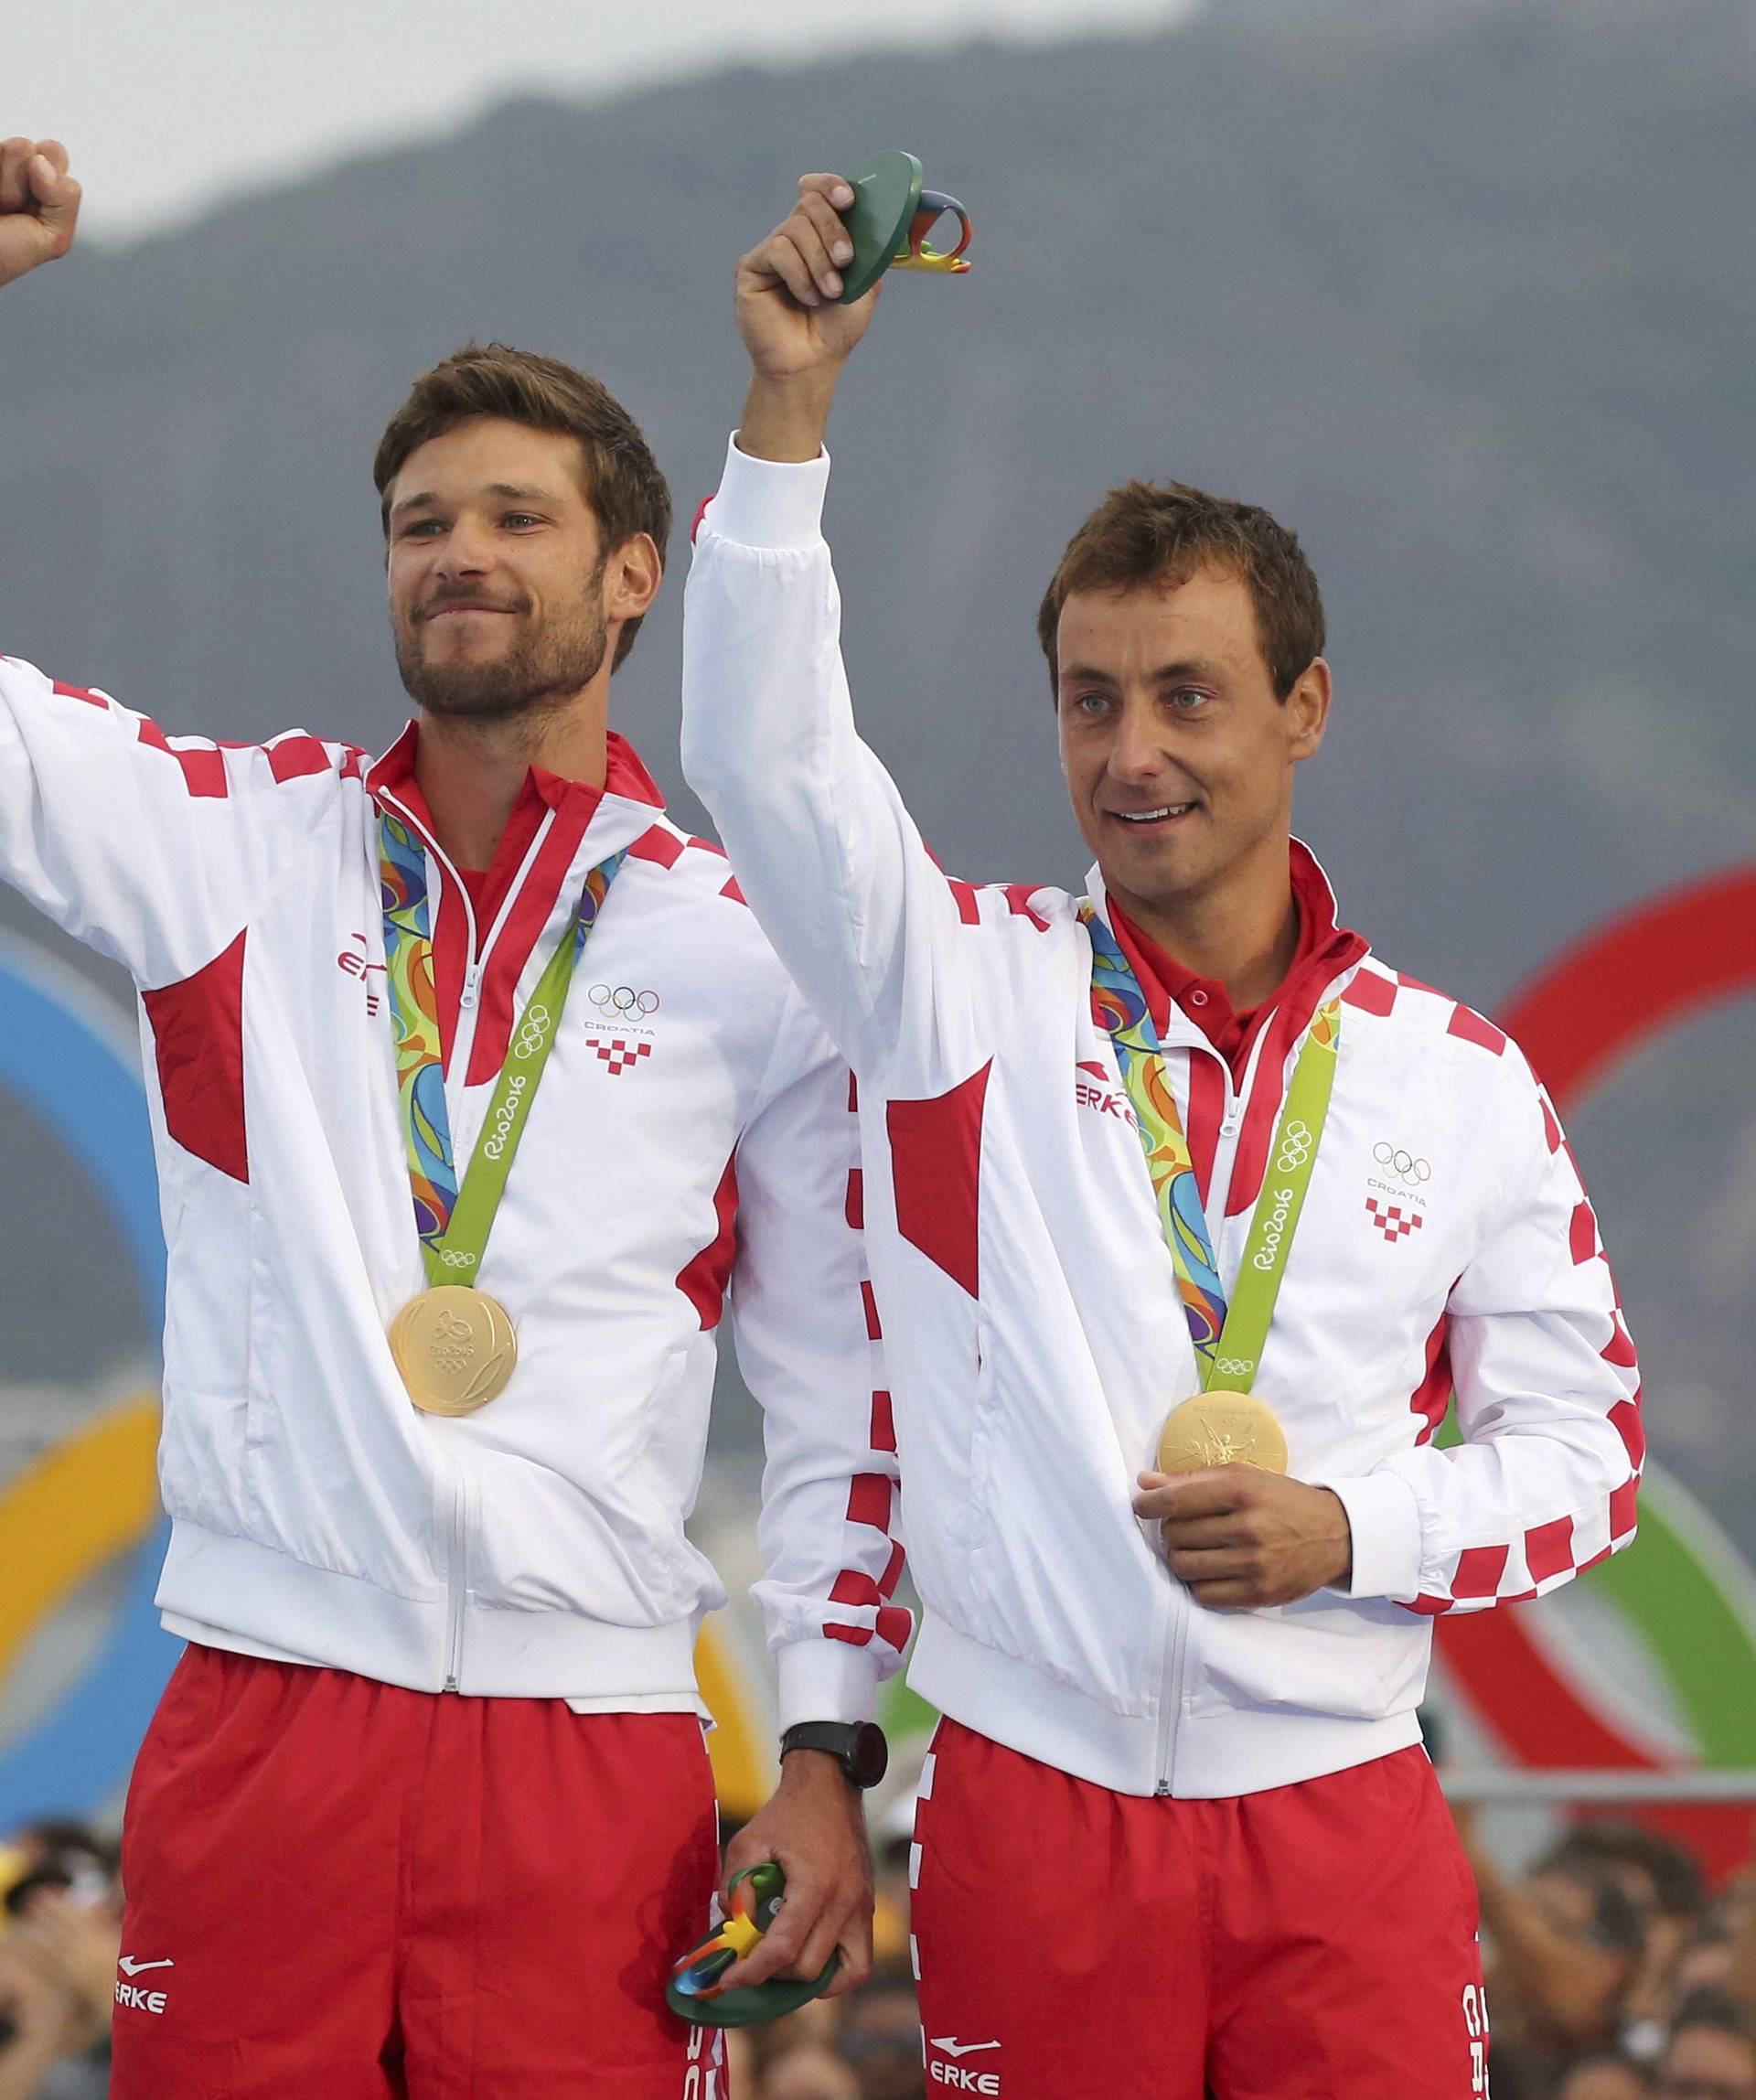 Sailing - Men's Two Person Dinghy - 470 - Victory Ceremony